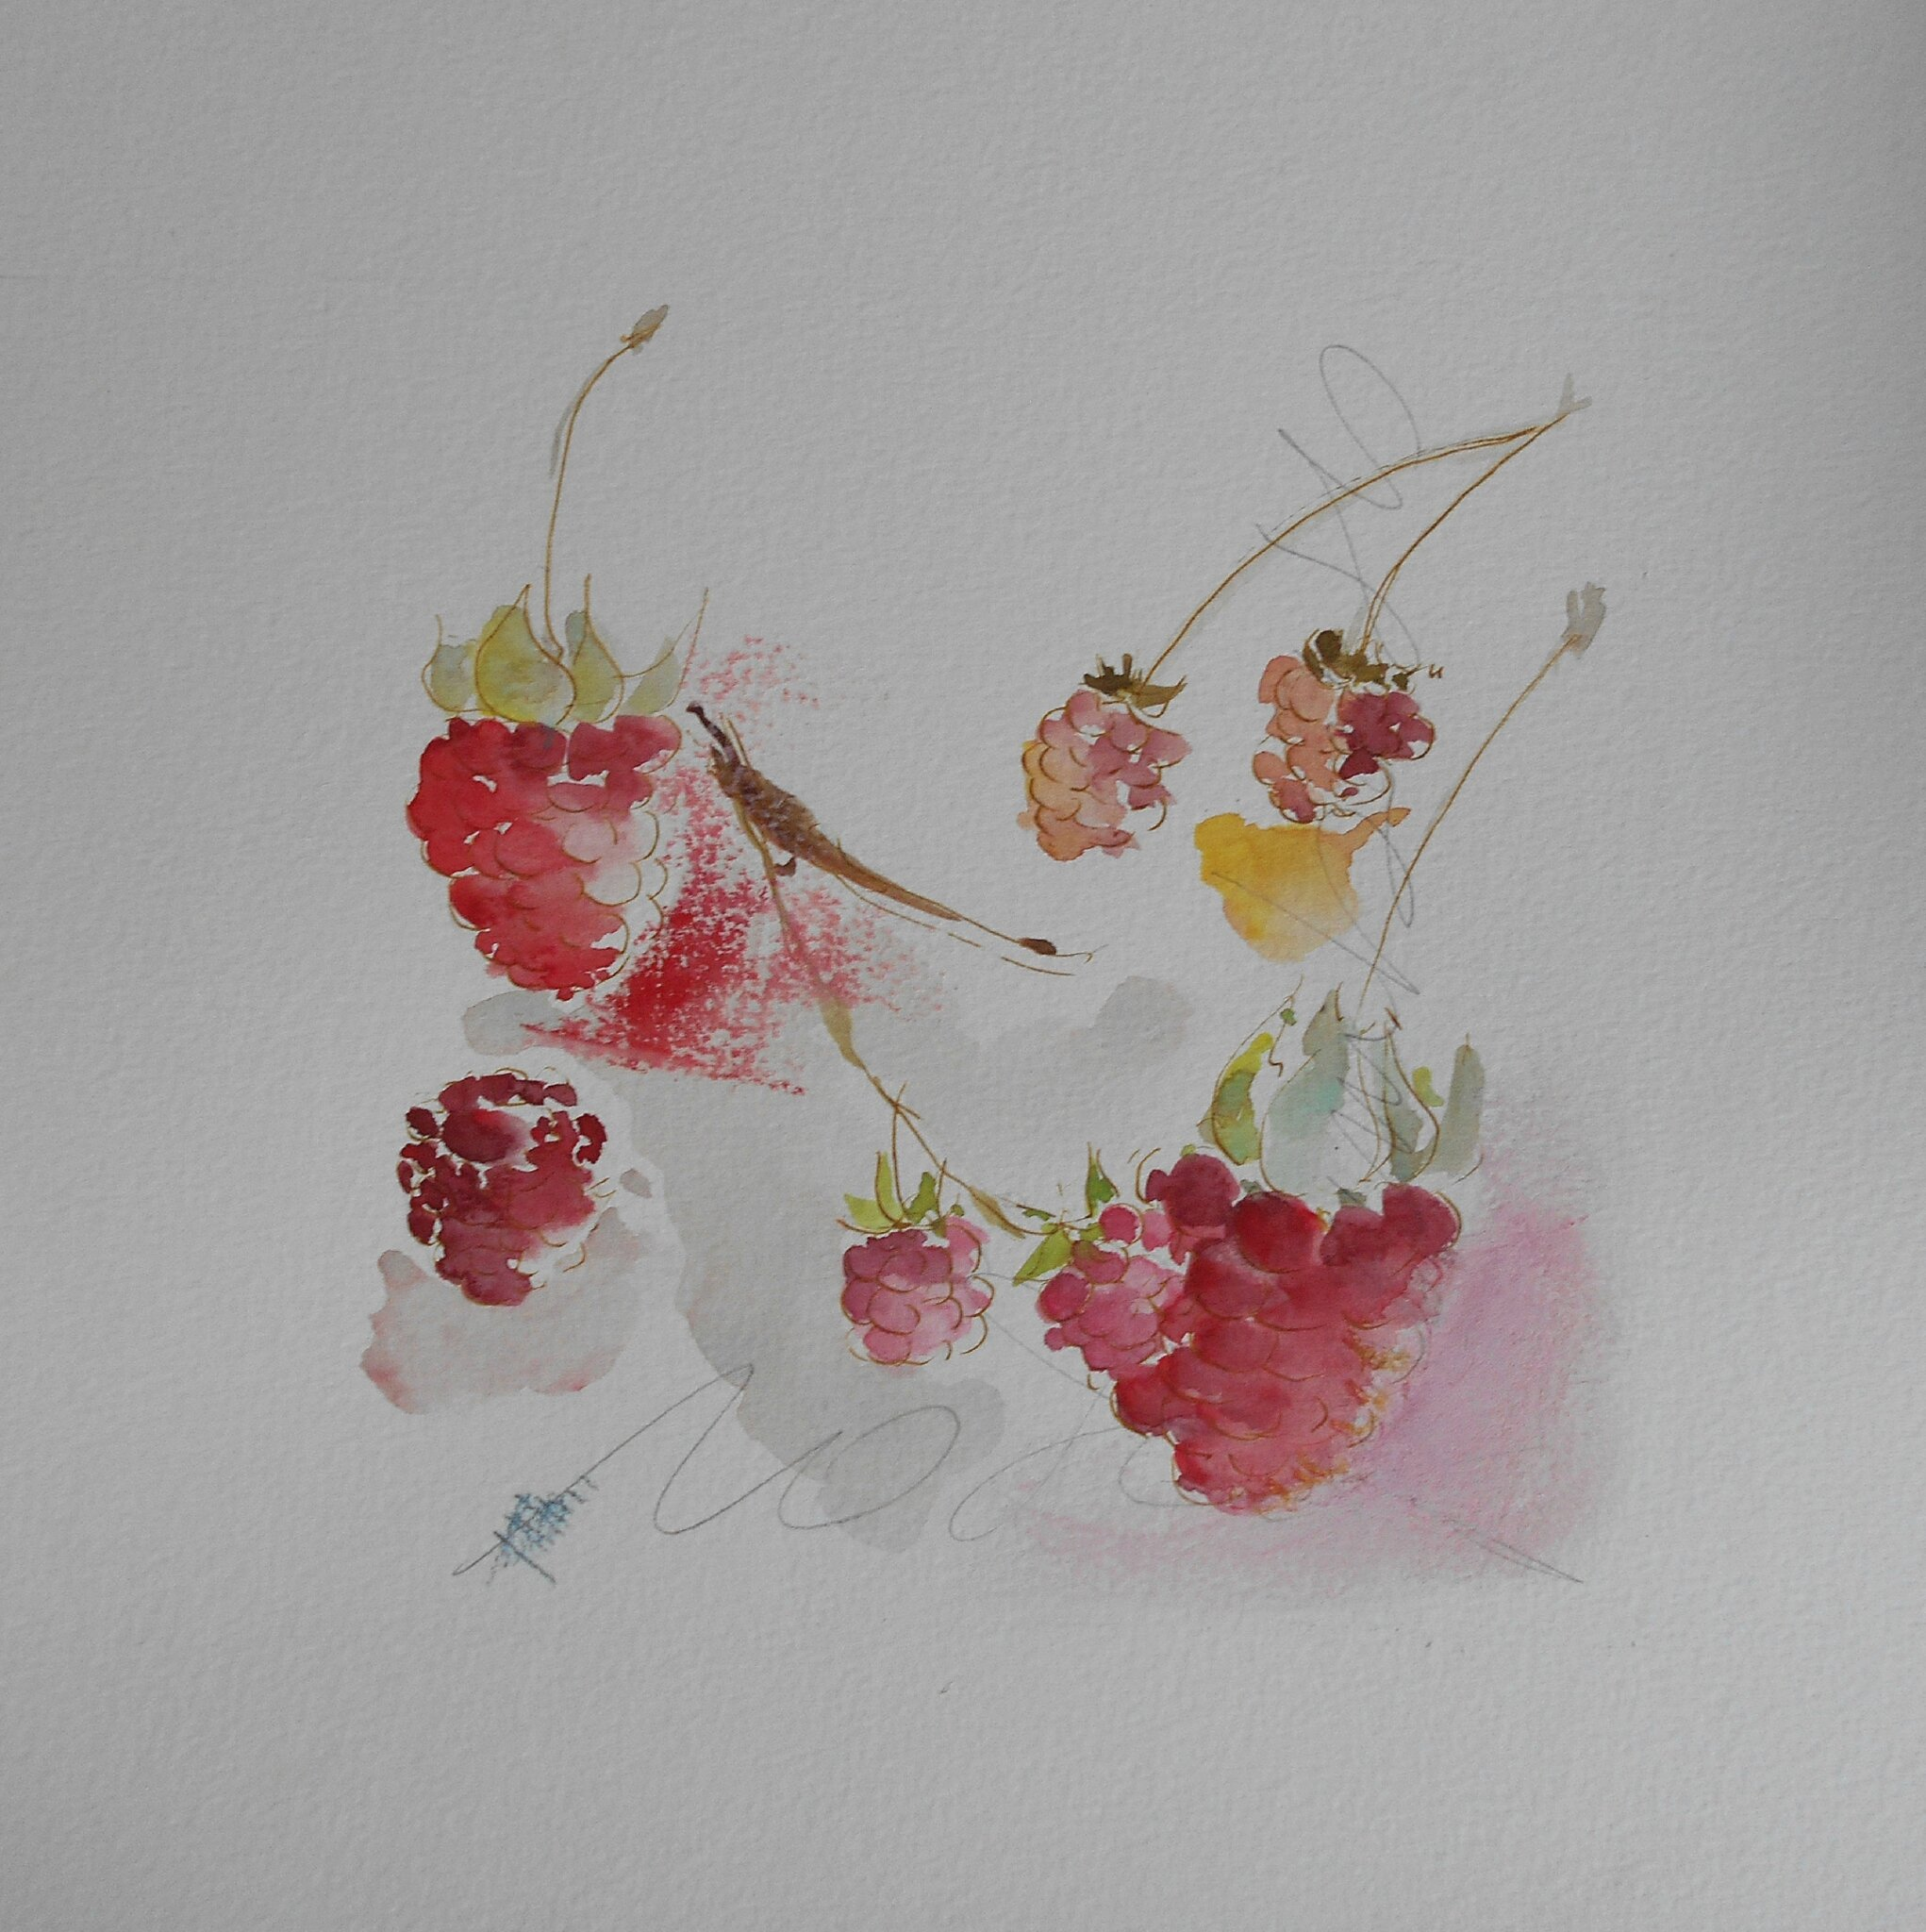 dessins aquarellés fruits tous les messages sur dessins